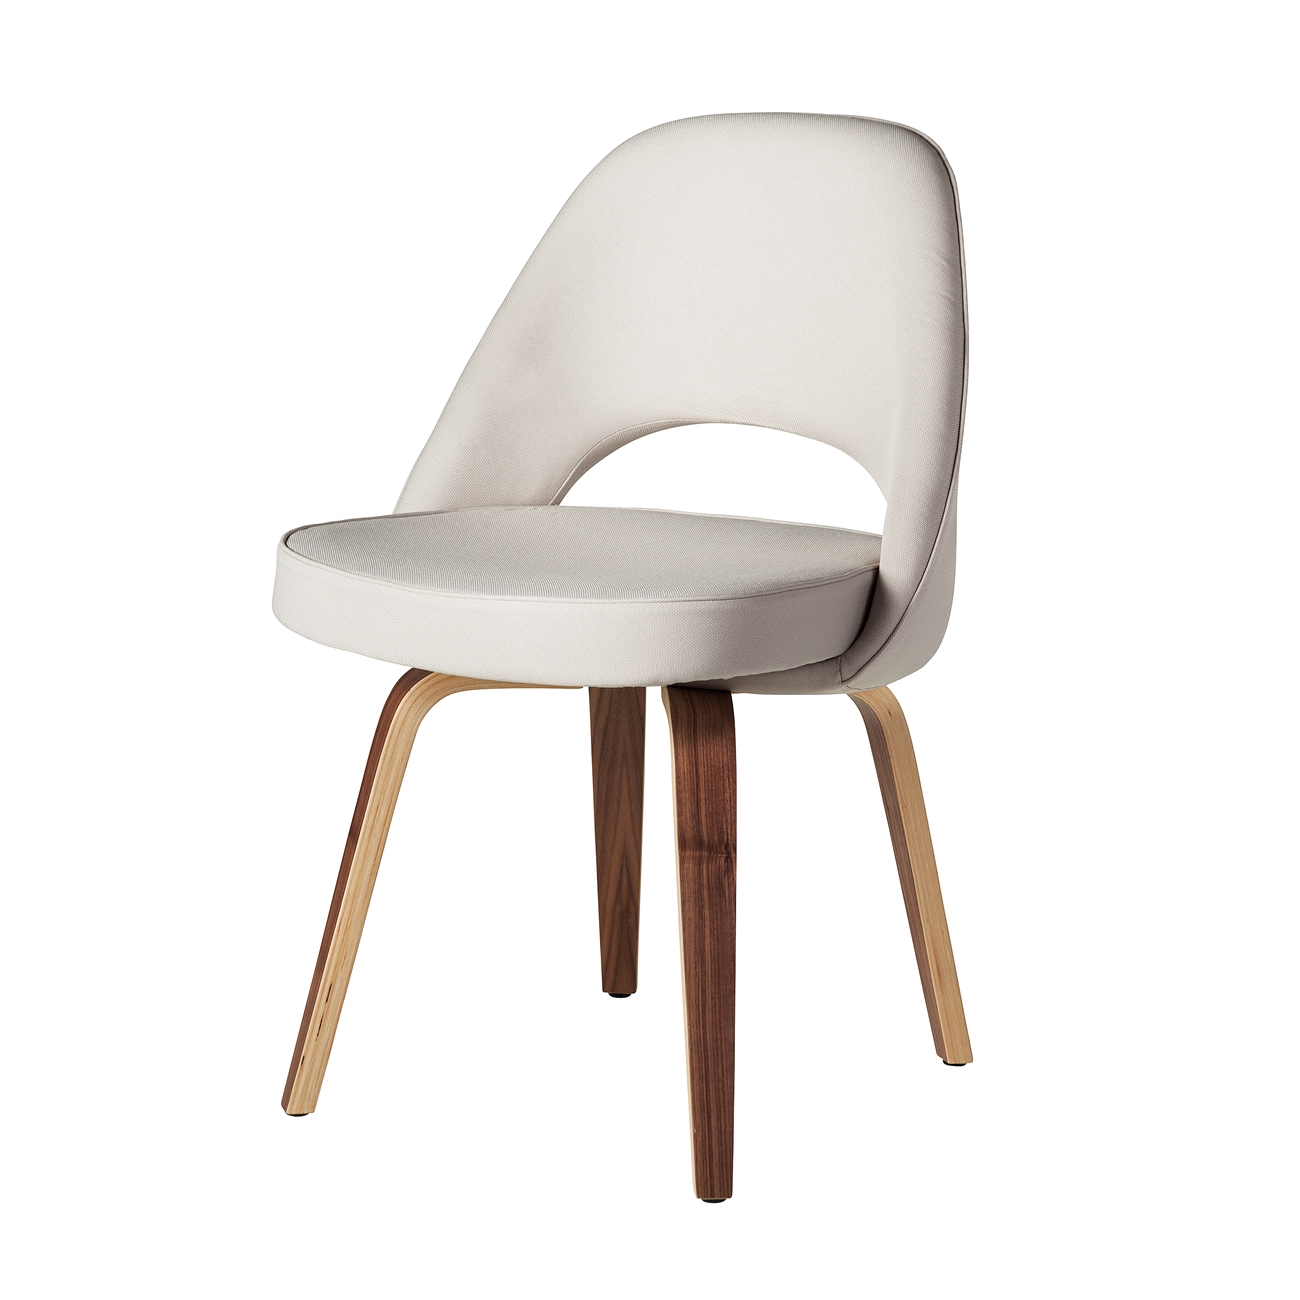 Saarinen Inspired Side Chair Larger Photo Email A Friend